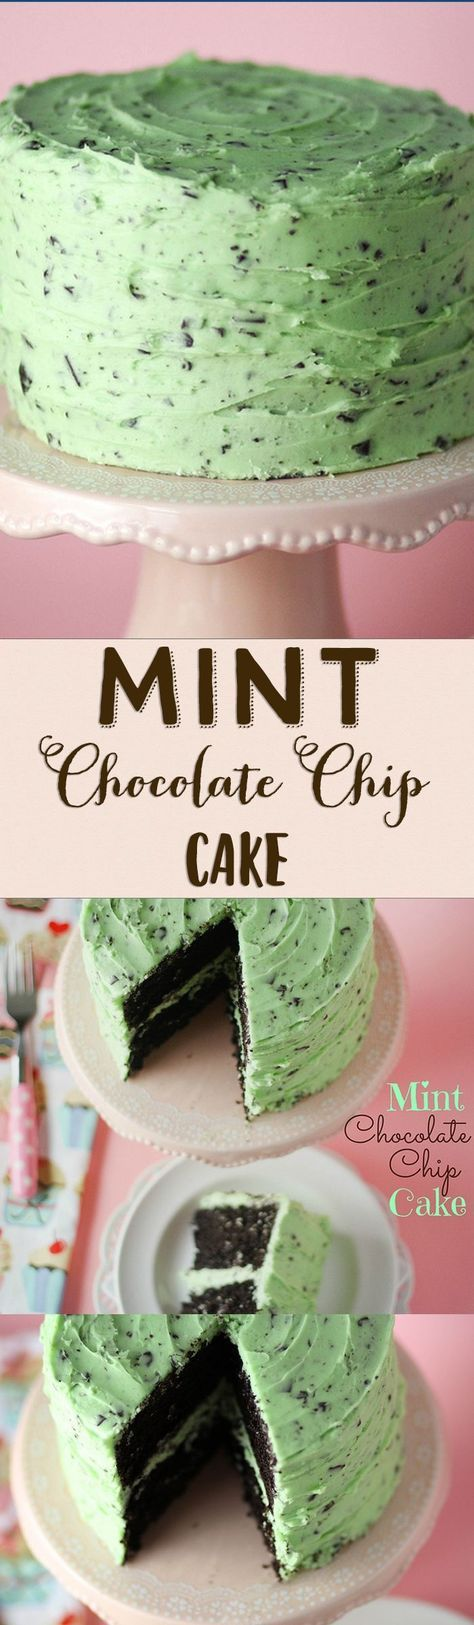 This Mint Chocolate Chip Cake is my most popular birthday cake! The frosting tastes just like Mint Chocolate Chip ice cream!!